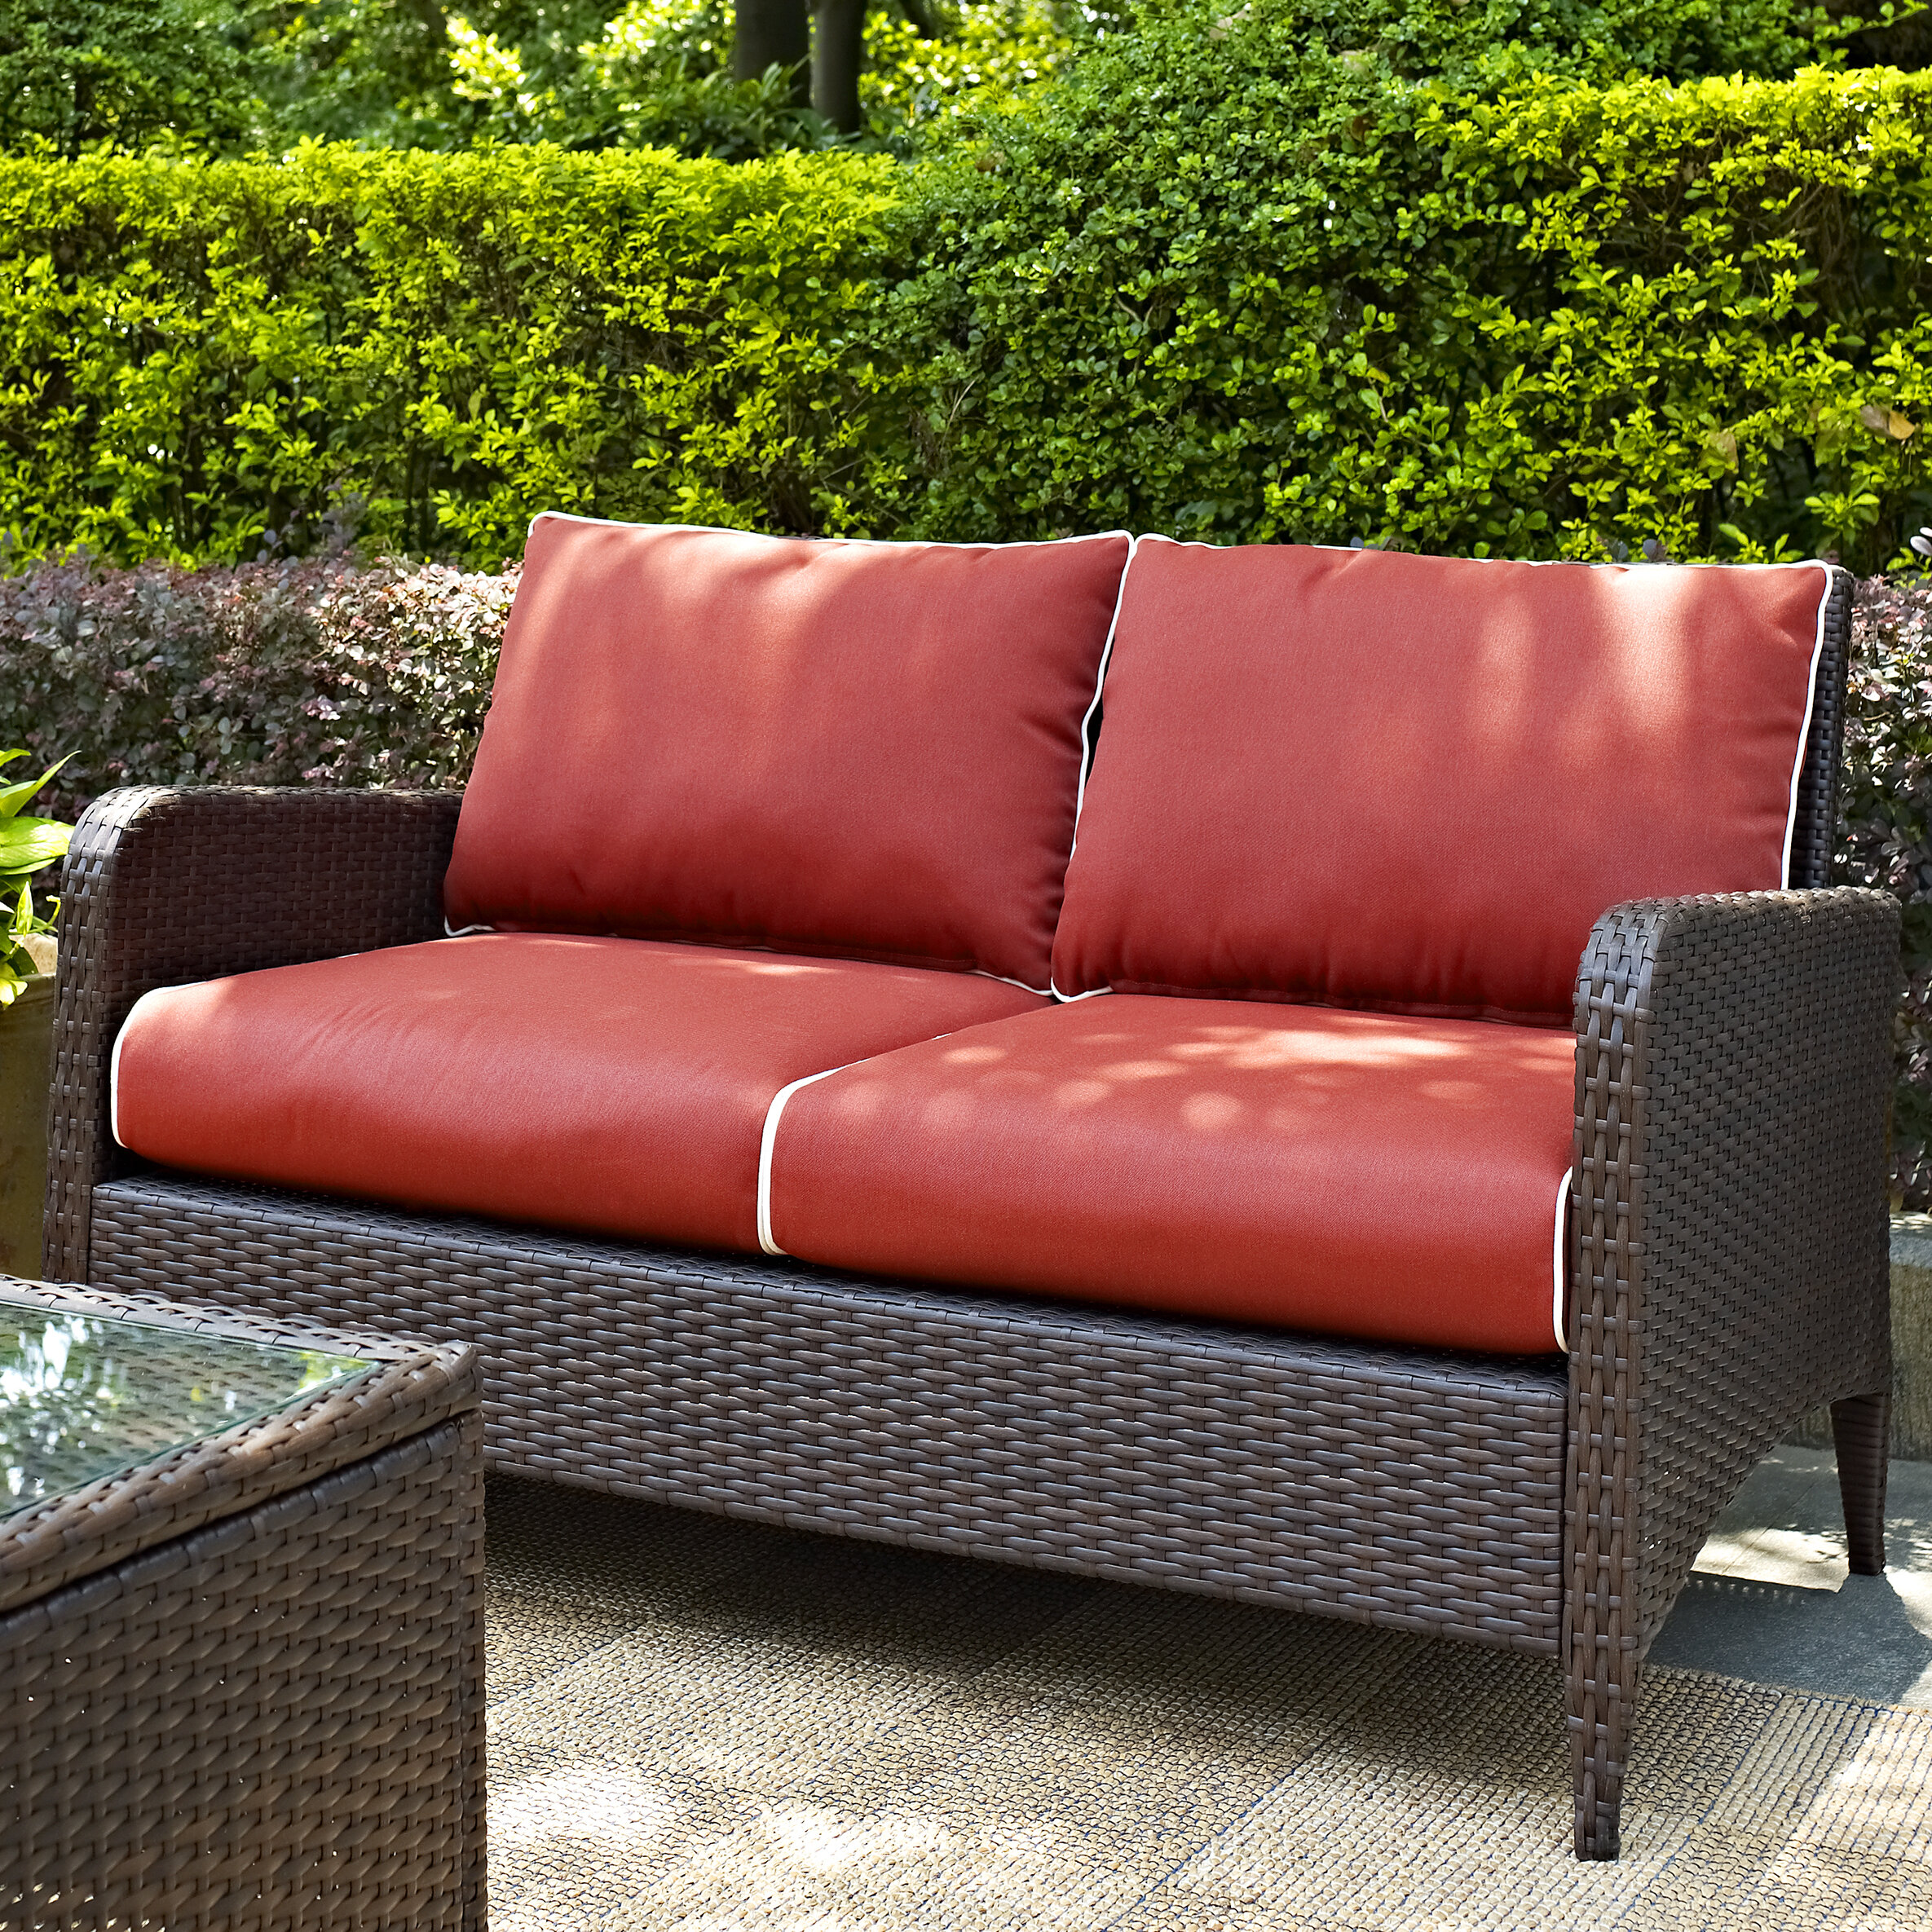 Mosca Patio Loveseat With Cushions Reviews Joss Main